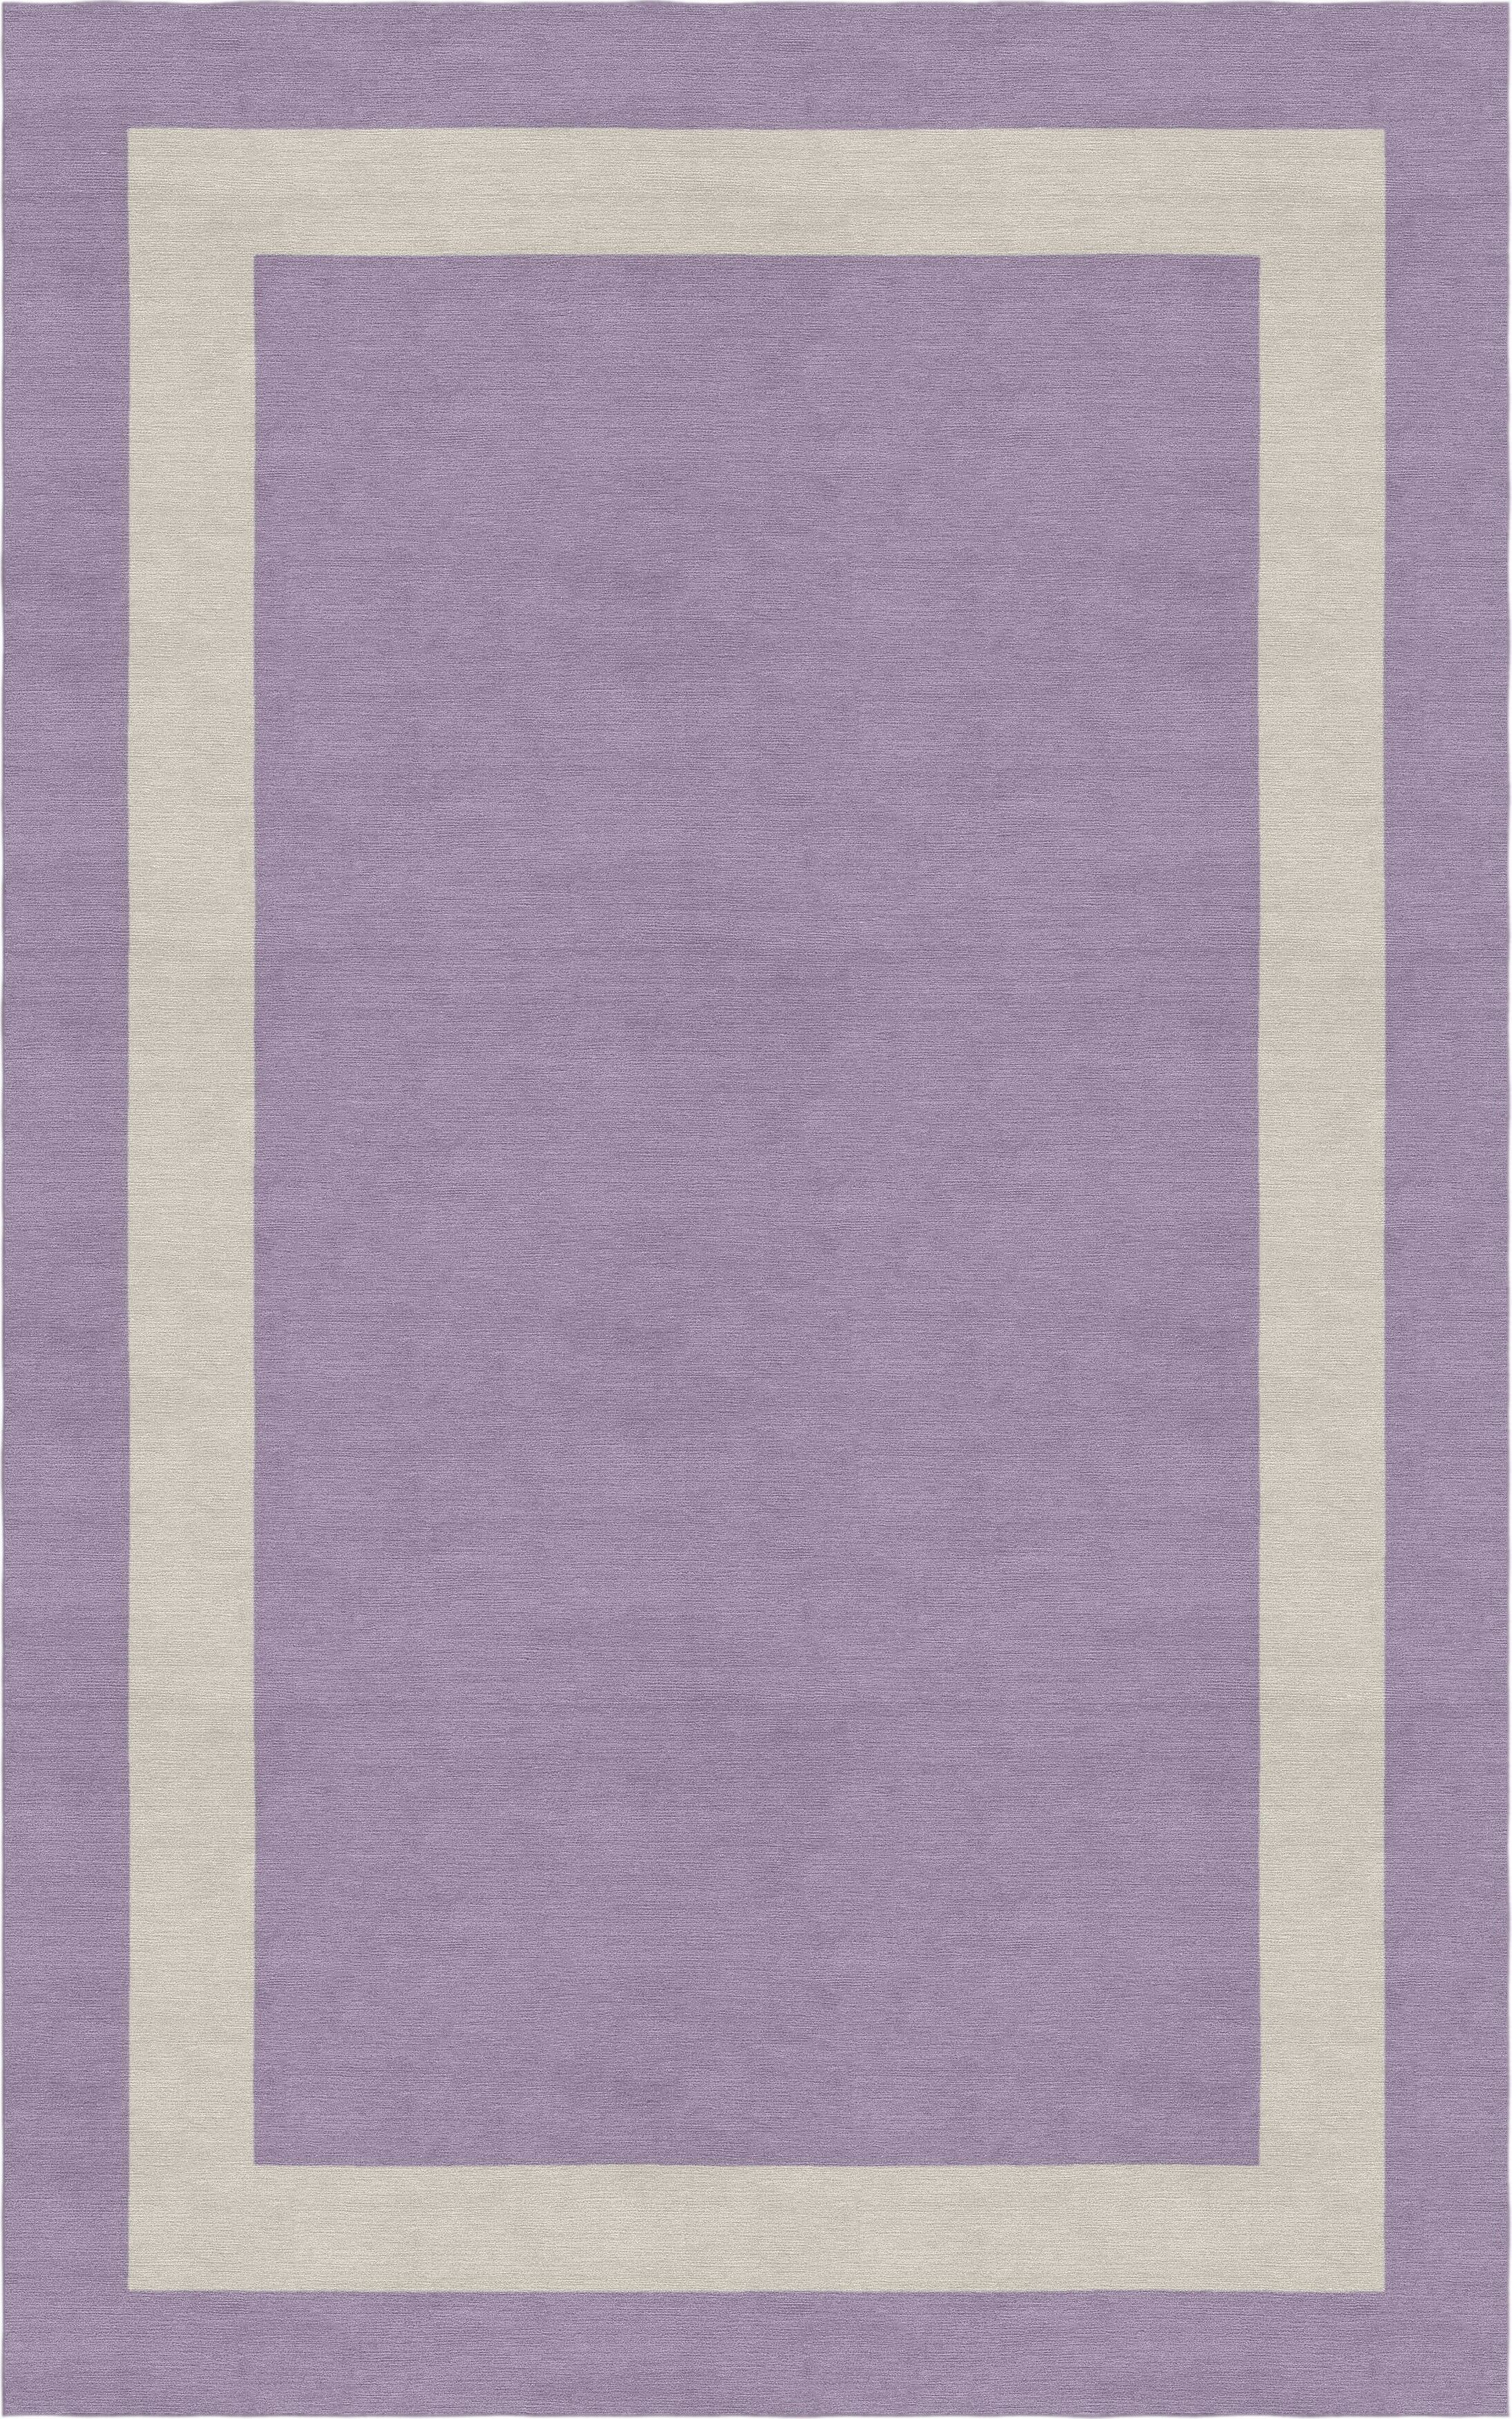 Zwolen Border Hand-Tufted Wool Violet/Silver Area Rug Rug Size: Rectangle 5' x 8'